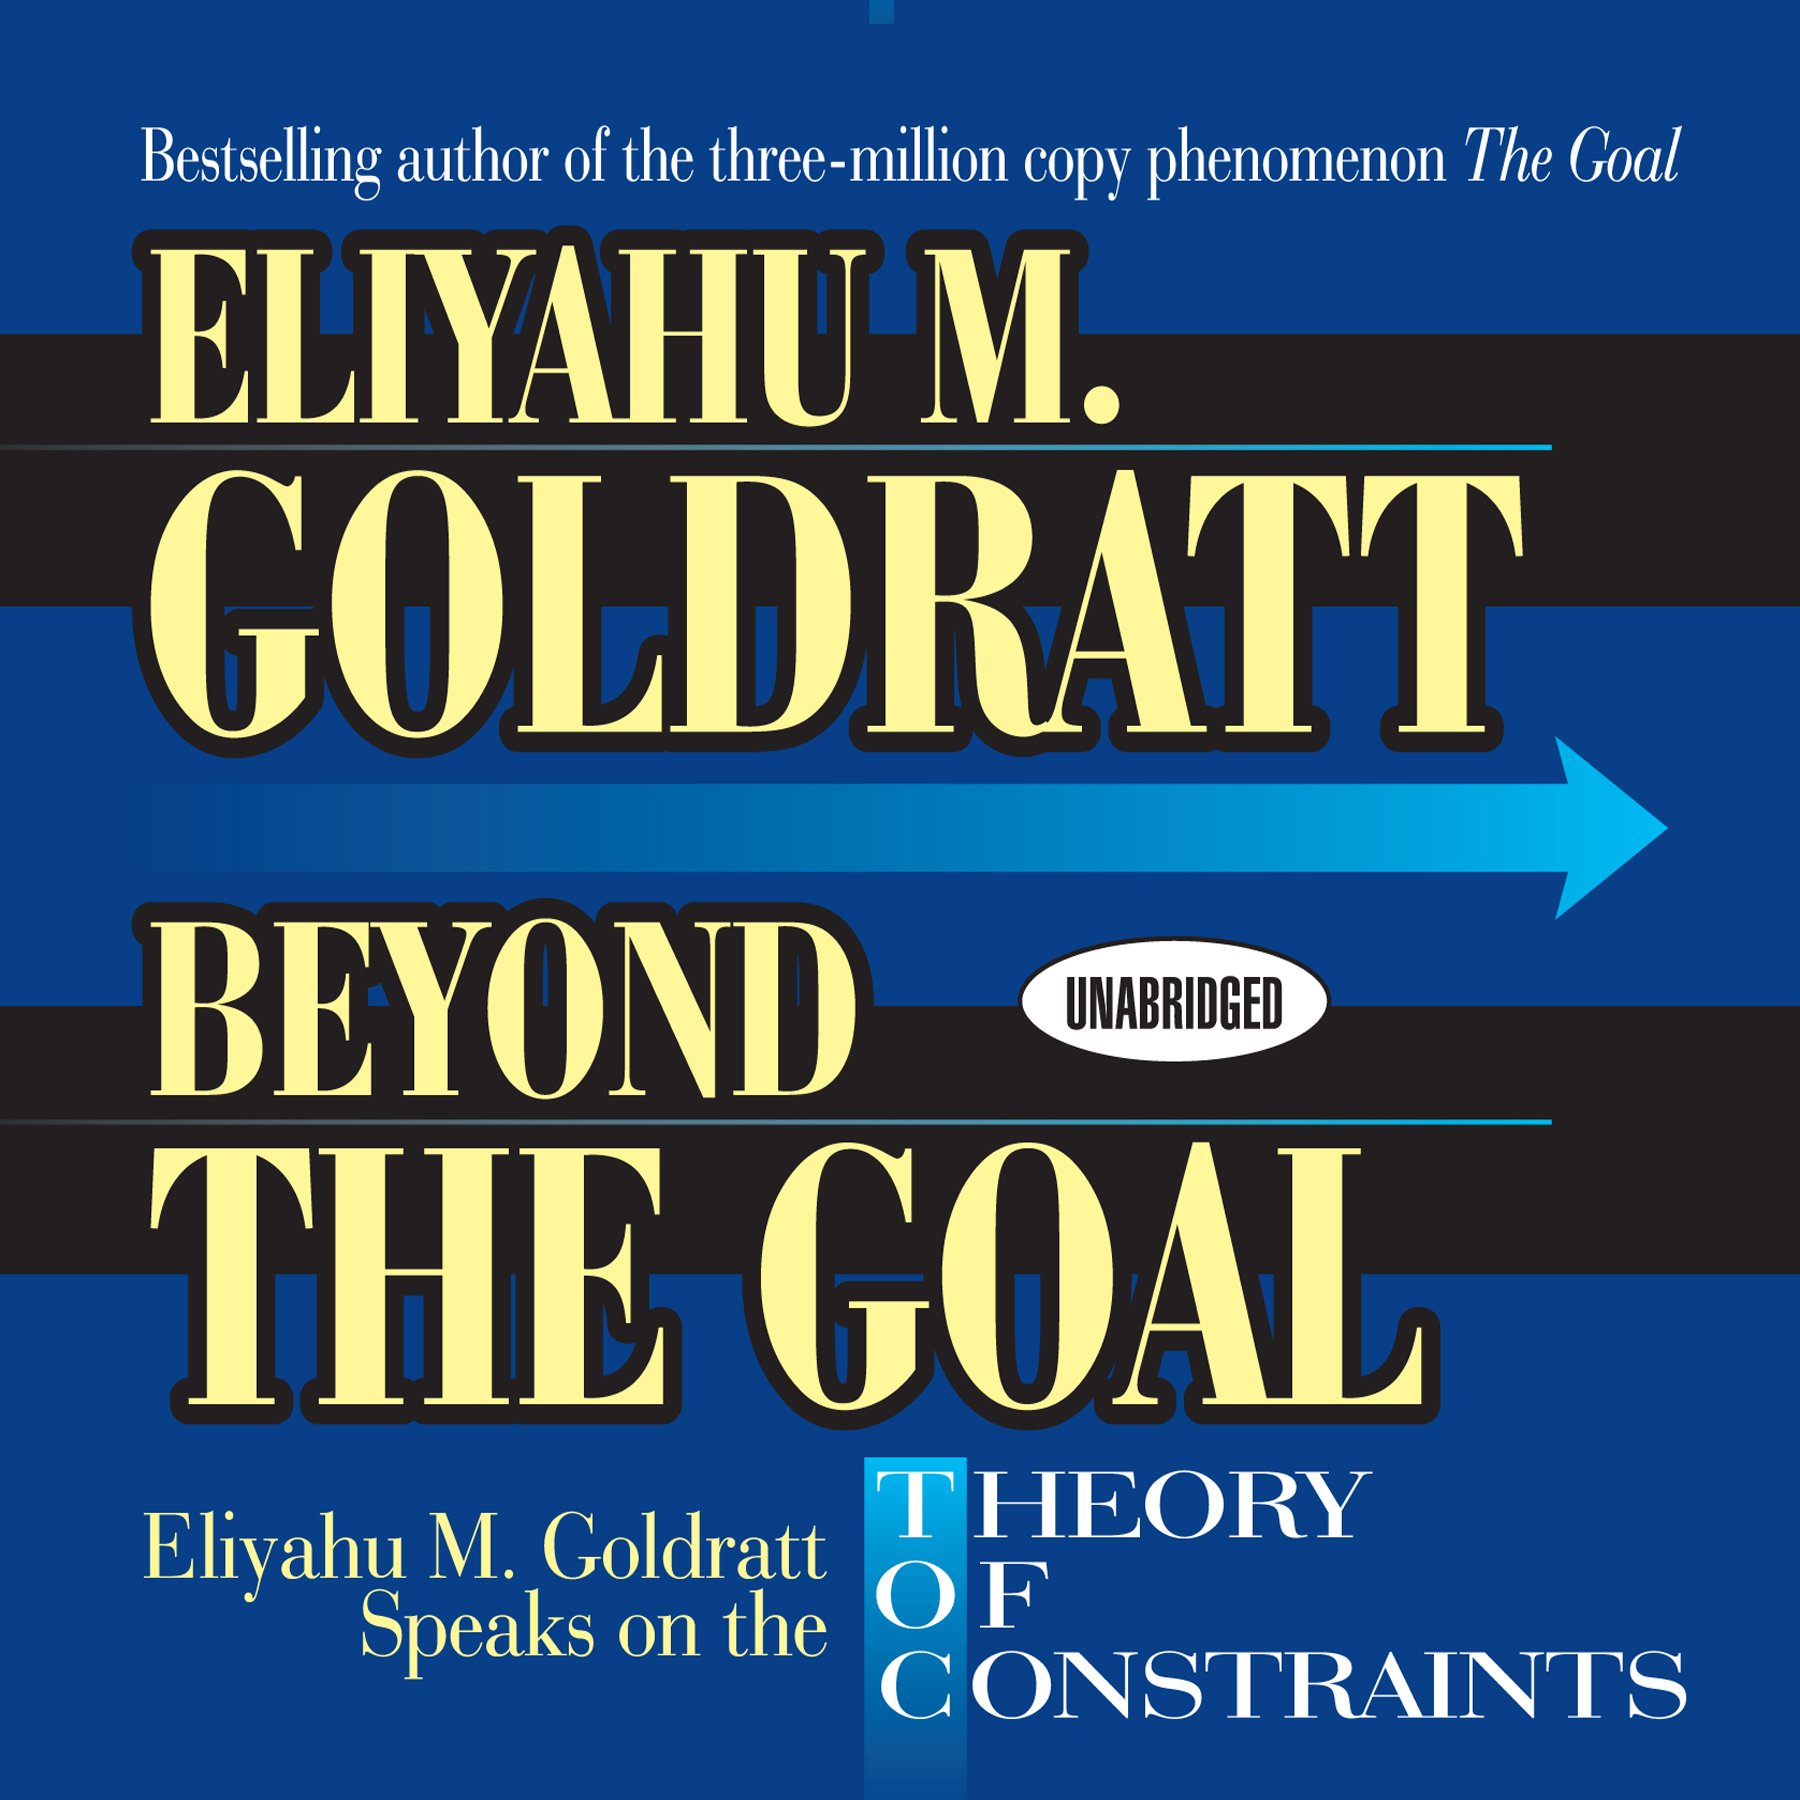 Beyond the Goal: Theory of Constraints - Eliyahu M. Goldratt - reviews for audiobook - reviews, quotes, summary